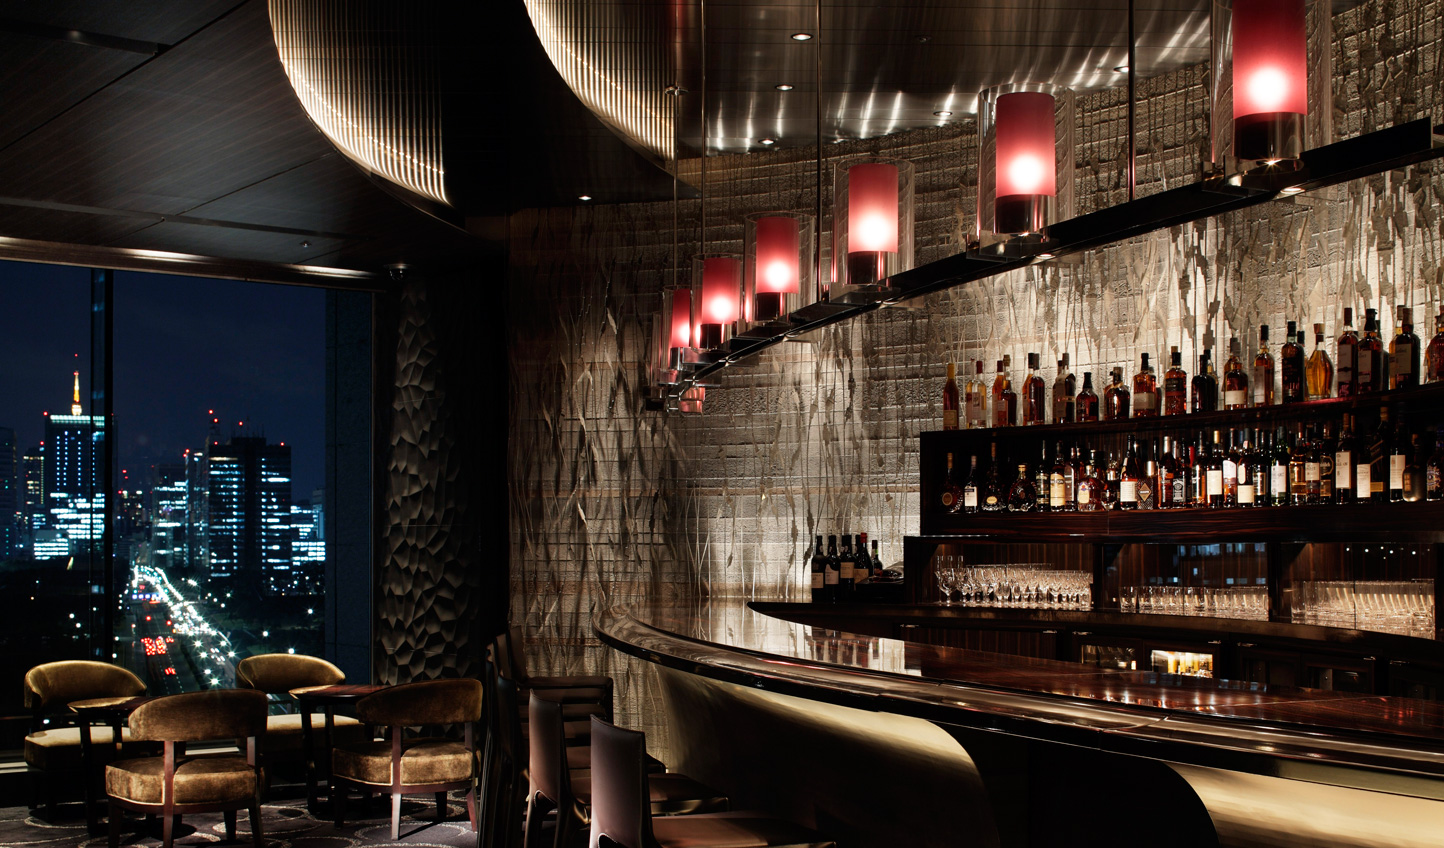 The chic and intimate Lounge Bar Privé